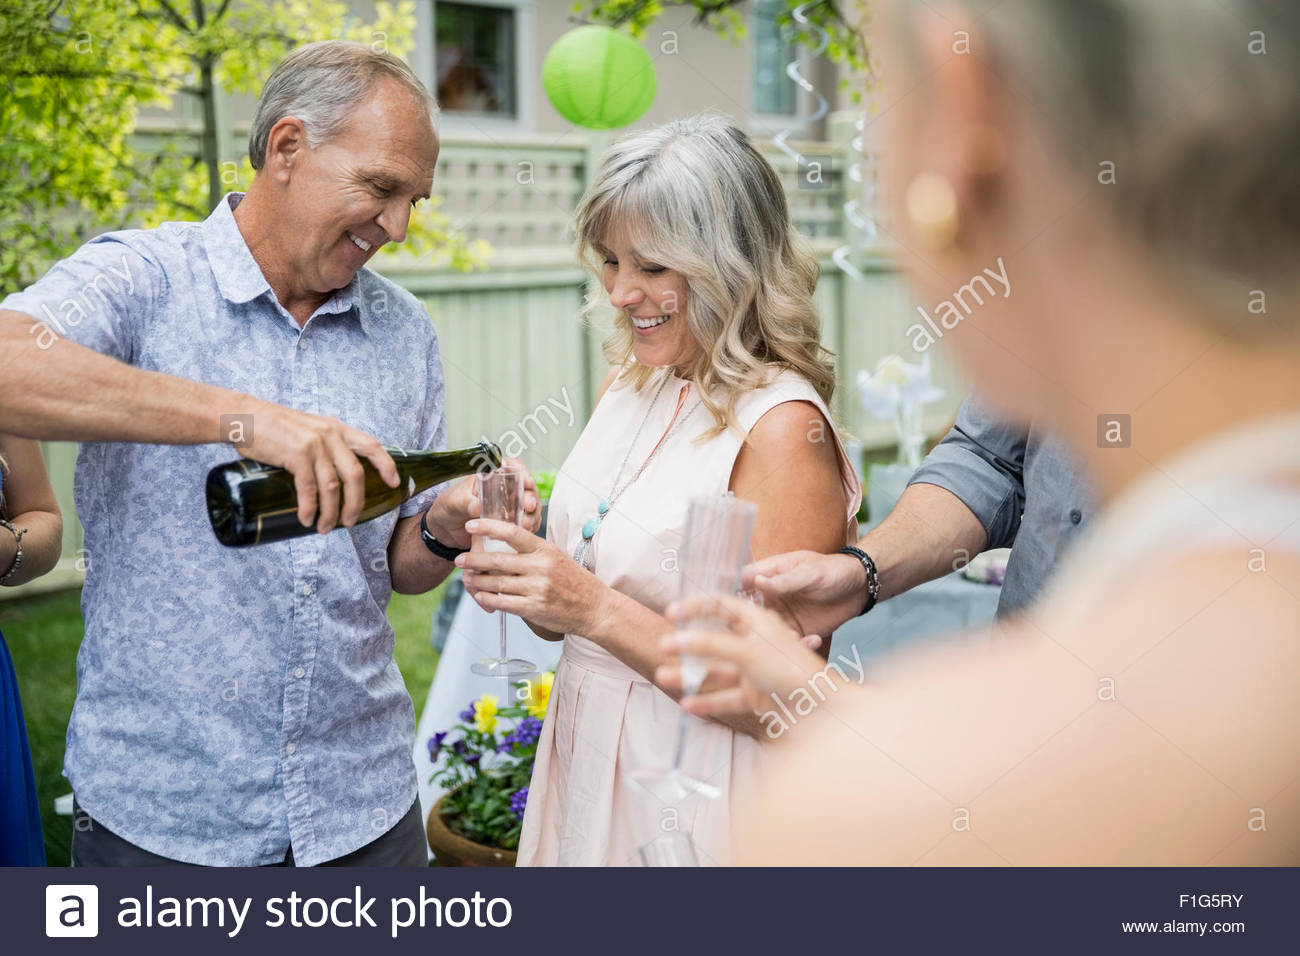 Mari pouring champagne pour femme at garden party Photo Stock